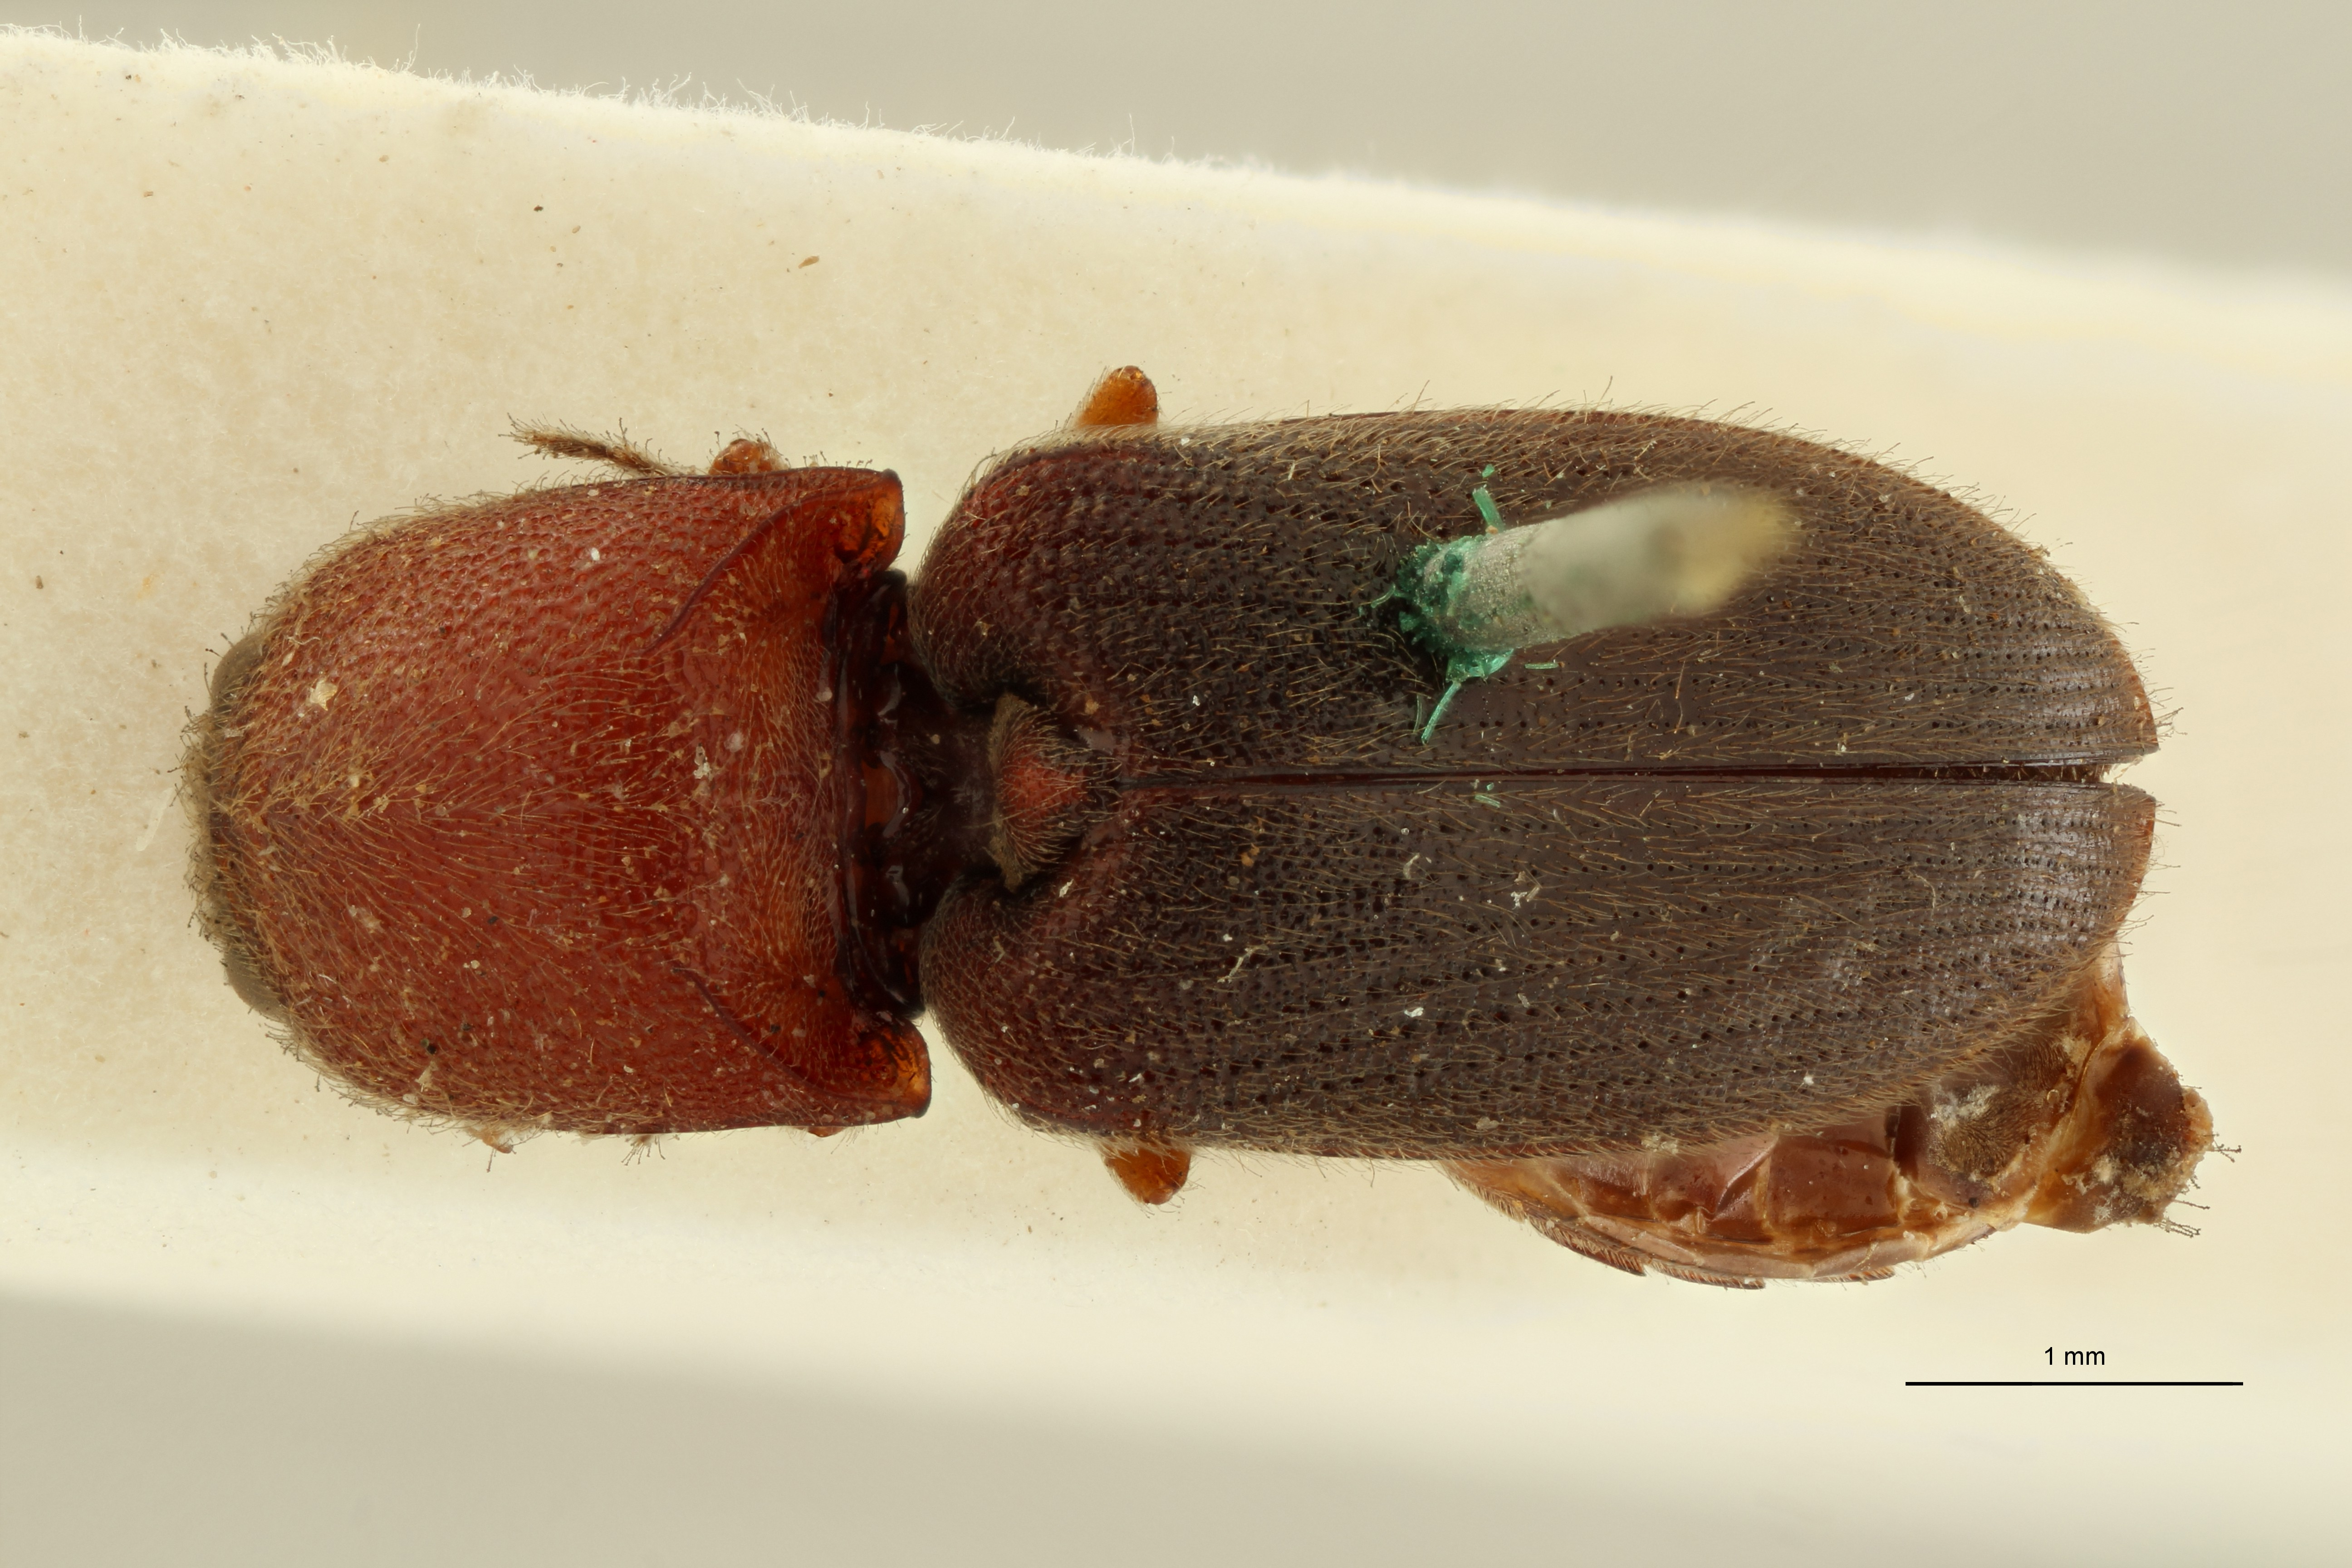 Arhaphes ruficollis nt1 D ZS PMax Scaled.jpeg